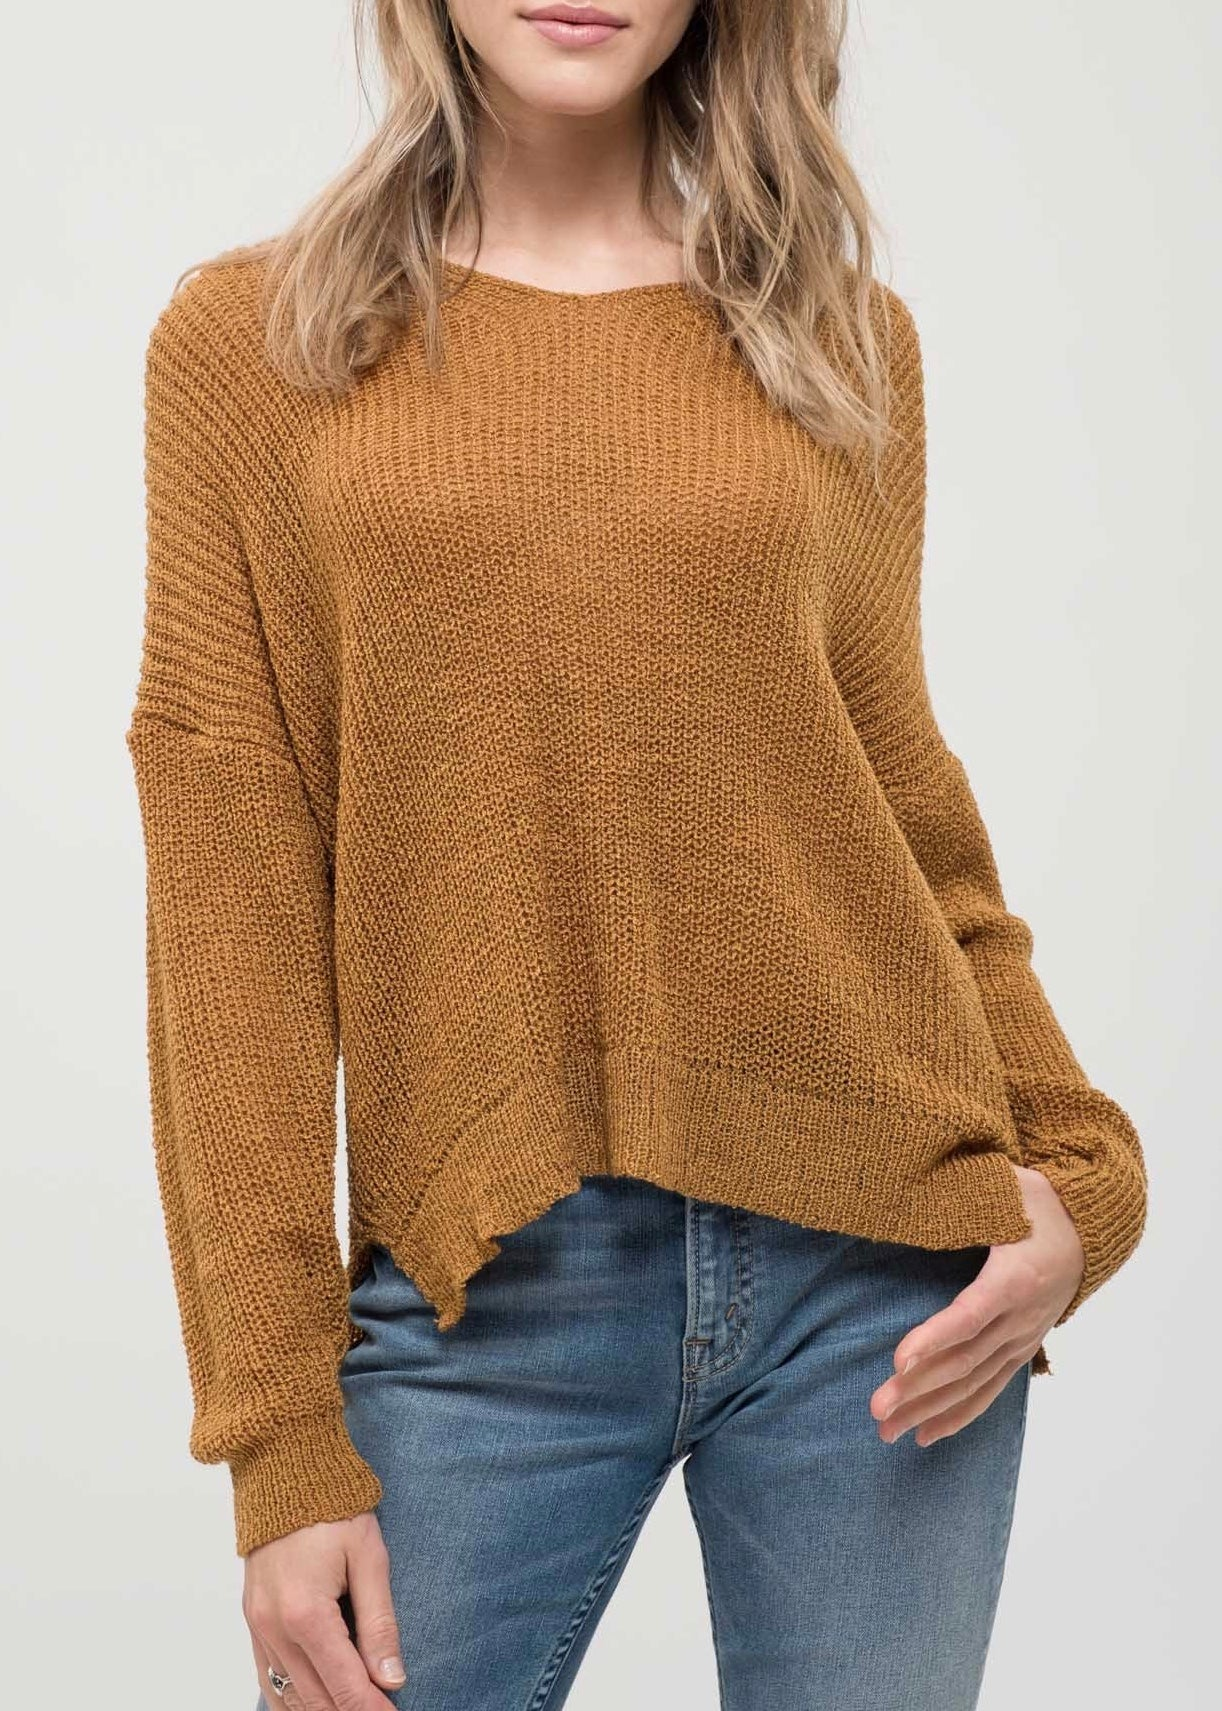 Bees Knees Sweater